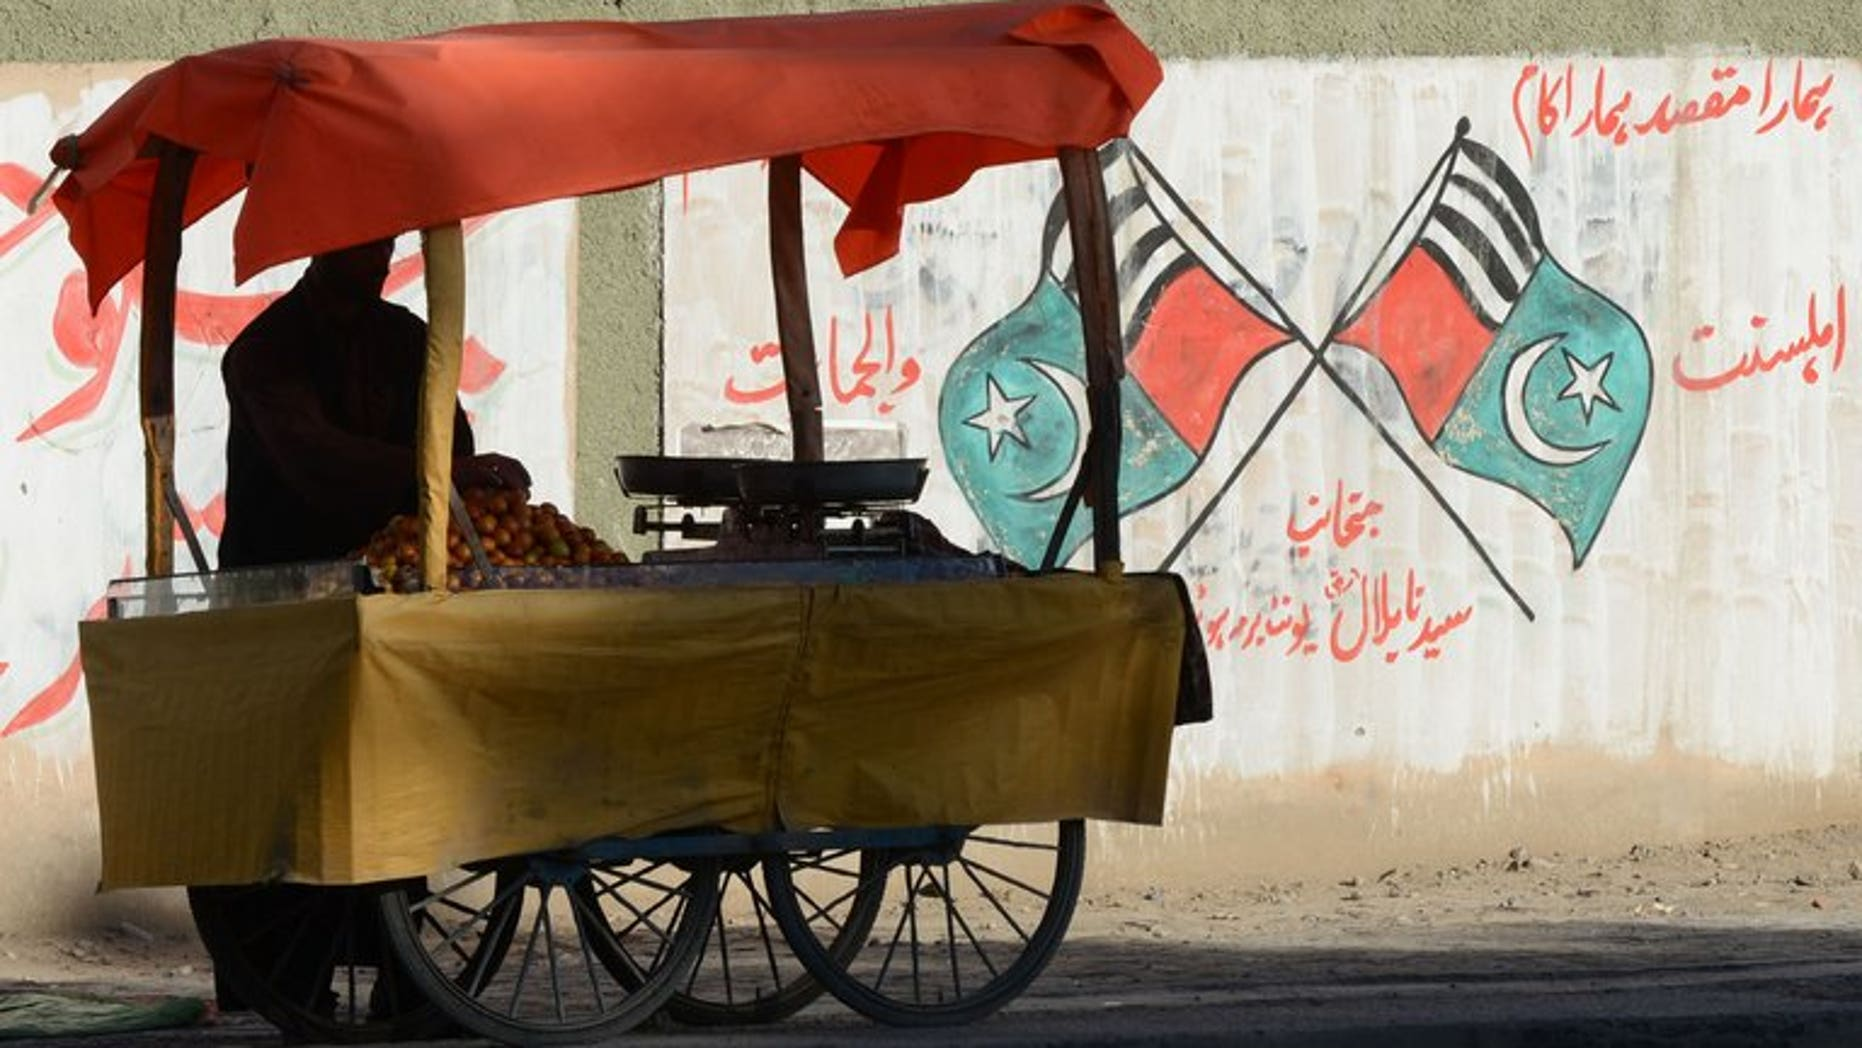 """A Pakistani vendor waits for customers near grattifi messages and scrawled flags of Jihad and Ahle Sunnat Wal Jamaat, the """"political wing"""" of a banned militant faction Lashkar-e-Jhangvi in Quetta on March 5, 2013. Pakistan will hang two convicted militants next week, officials said, despite a Taliban warning that it would regard the execution of any of its members as a """"declaration of war""""."""